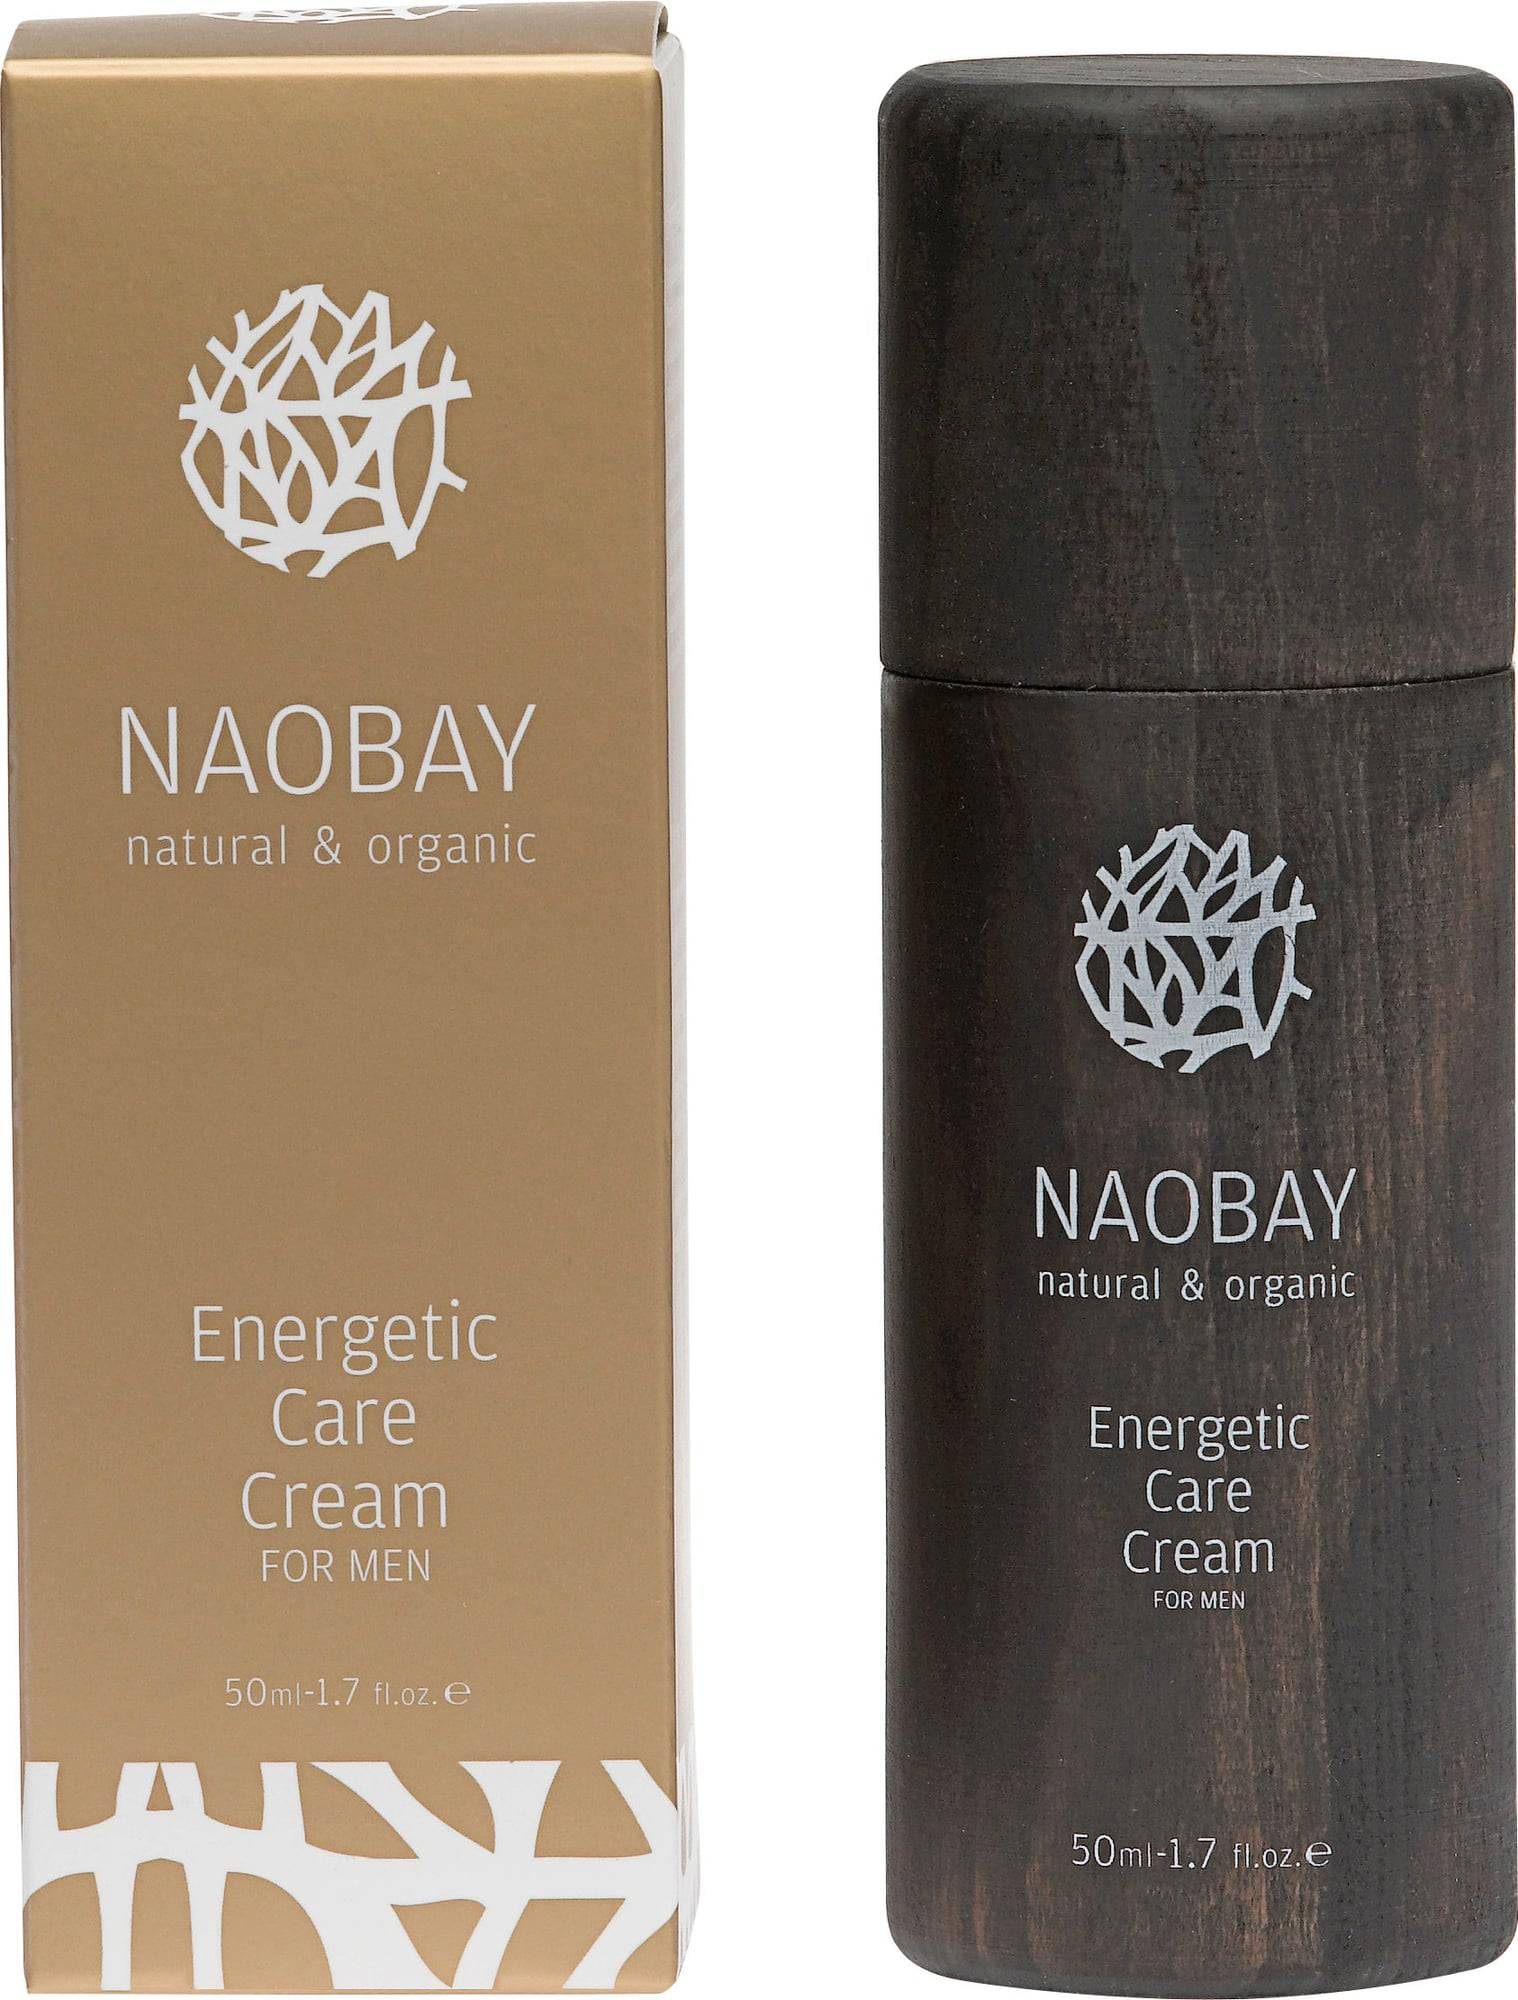 NAOBAY Energetic Care Cream For Men - 50 ml